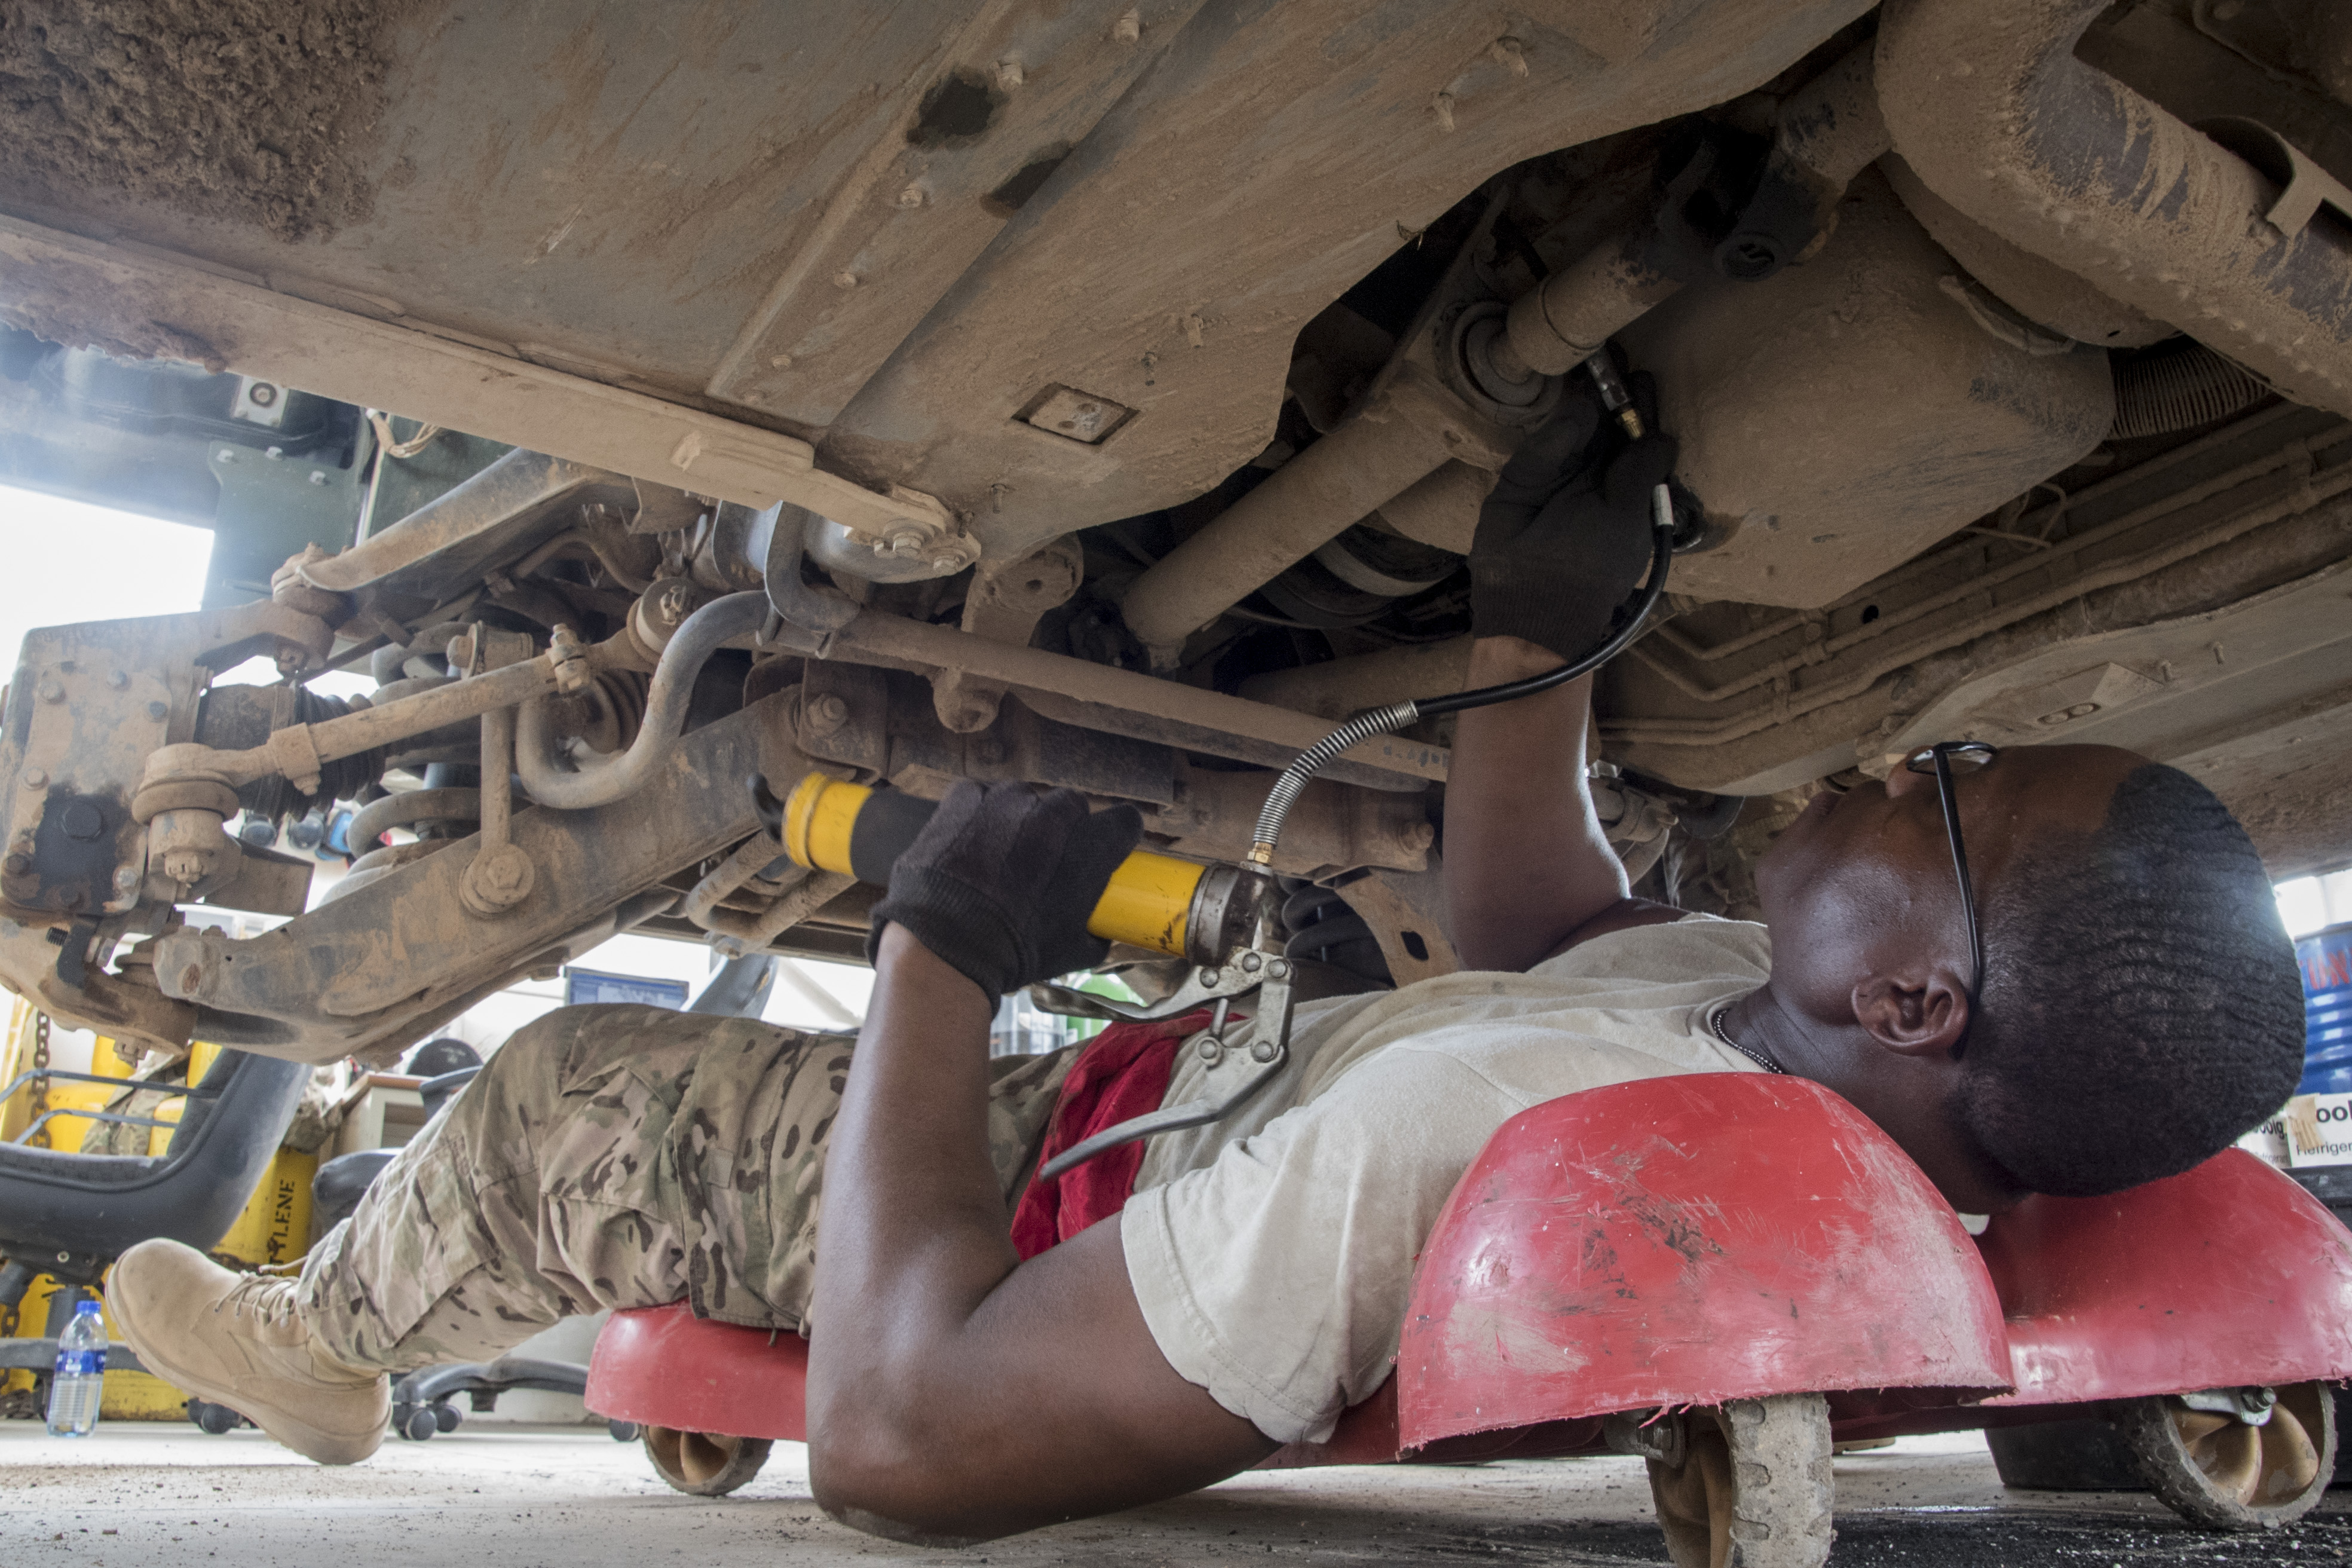 U.S. Army Spc. Christopher Davis of the 1st Battalion, 153rd Infantry Regiment, deployed with the Combined Joint Task Force-Horn of Africa (CJTF-HOA) in Camp Lemonnier, Djibouti, greases the undercarriage while performing a biannual service inspection on a Humvee, May 29, 2017. The Soldiers maintain vehicles to support efforts in countering regional violent extremist organizations. (U.S. Air National Guard photo by Tech. Sgt. Joe Harwood)